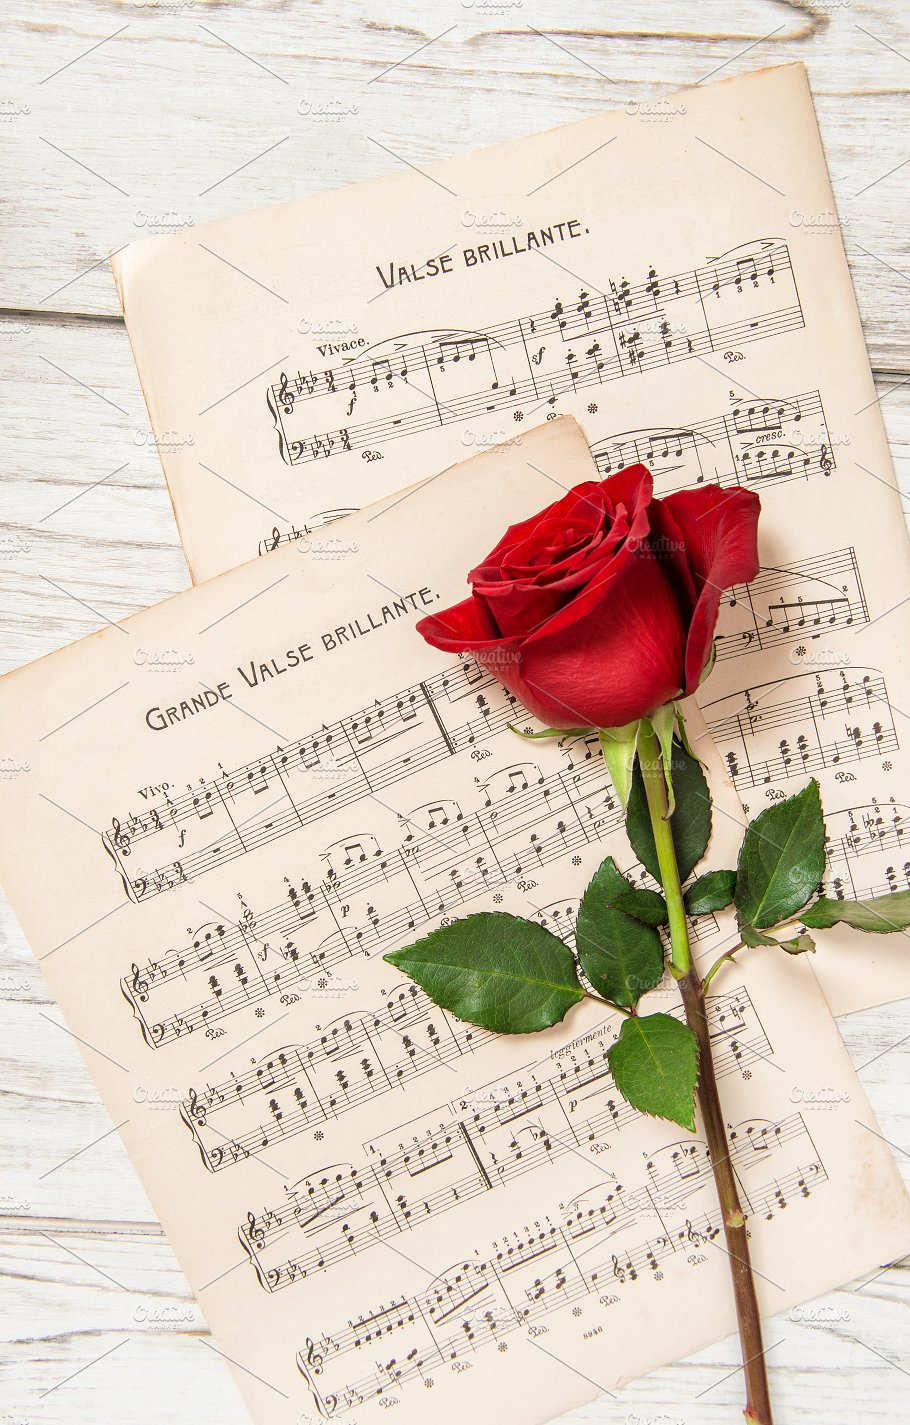 Red Rose Flower Music Notes Sheet Arts Entertainment Photos